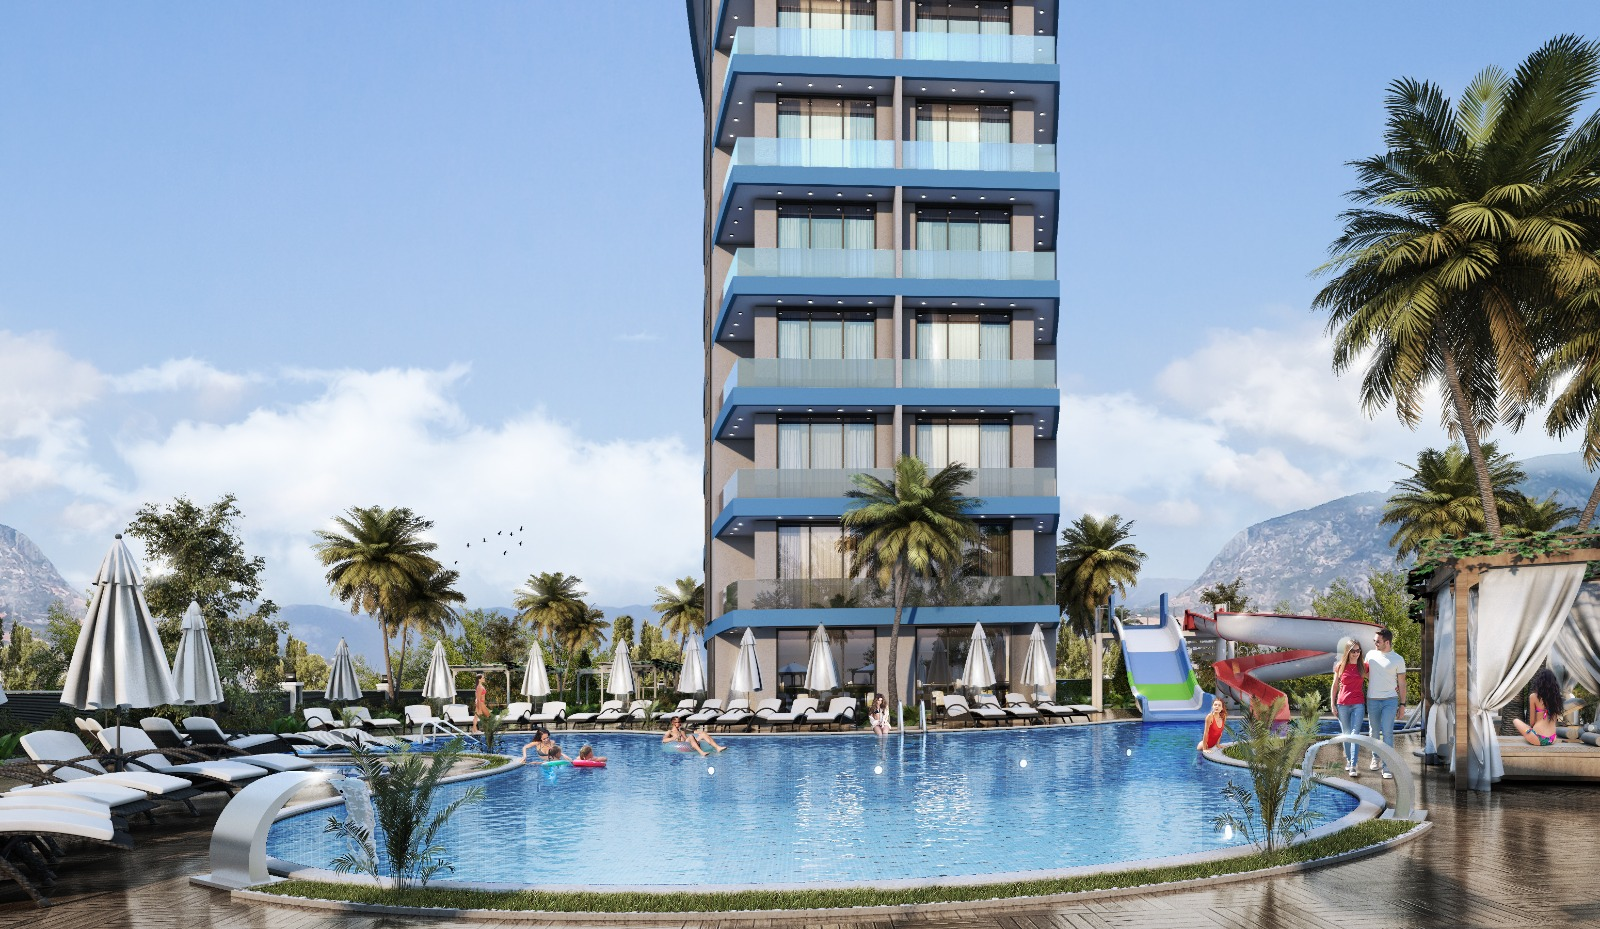 New building for sale apartments in Alanya/Avsallar